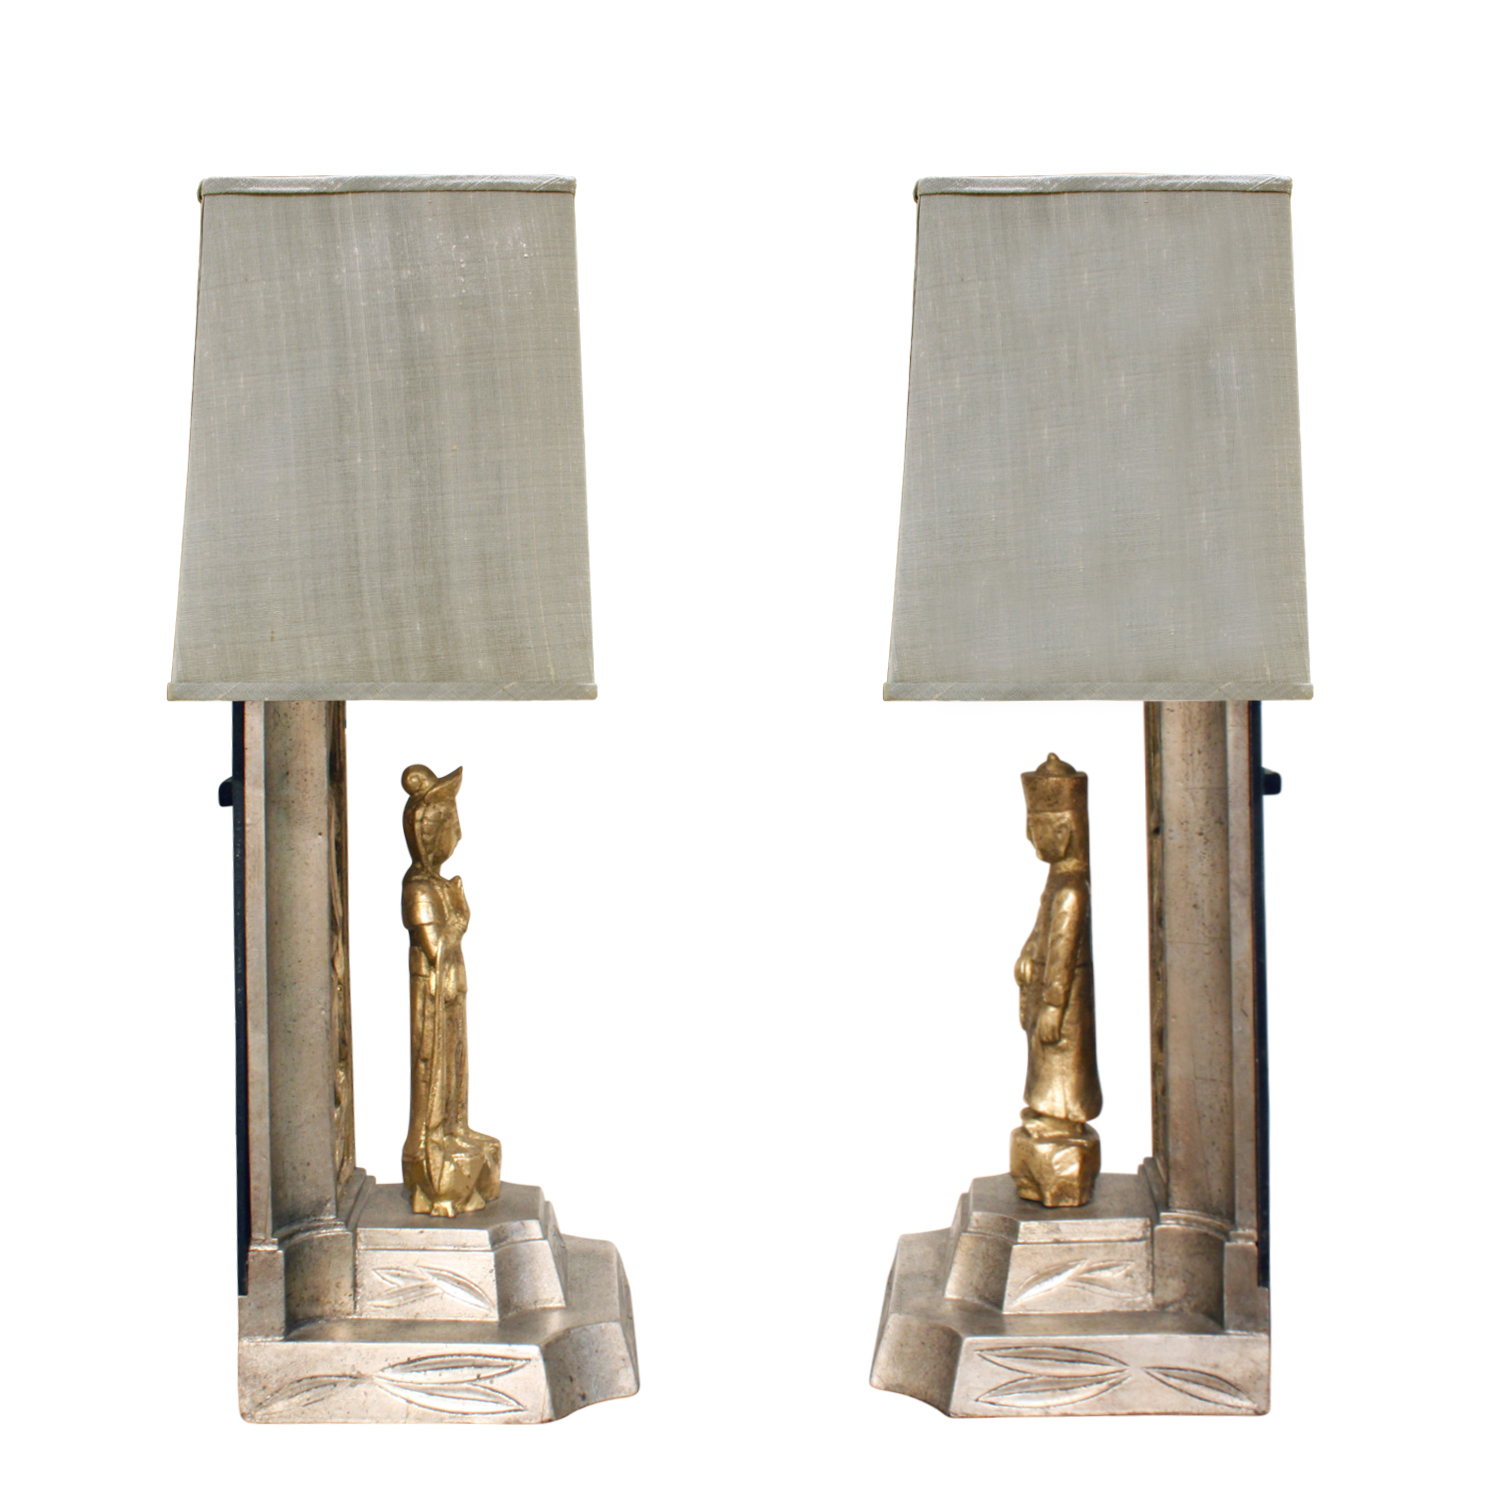 Mont 65 white+gold chinese figurs tablelamps351 sde.JPG